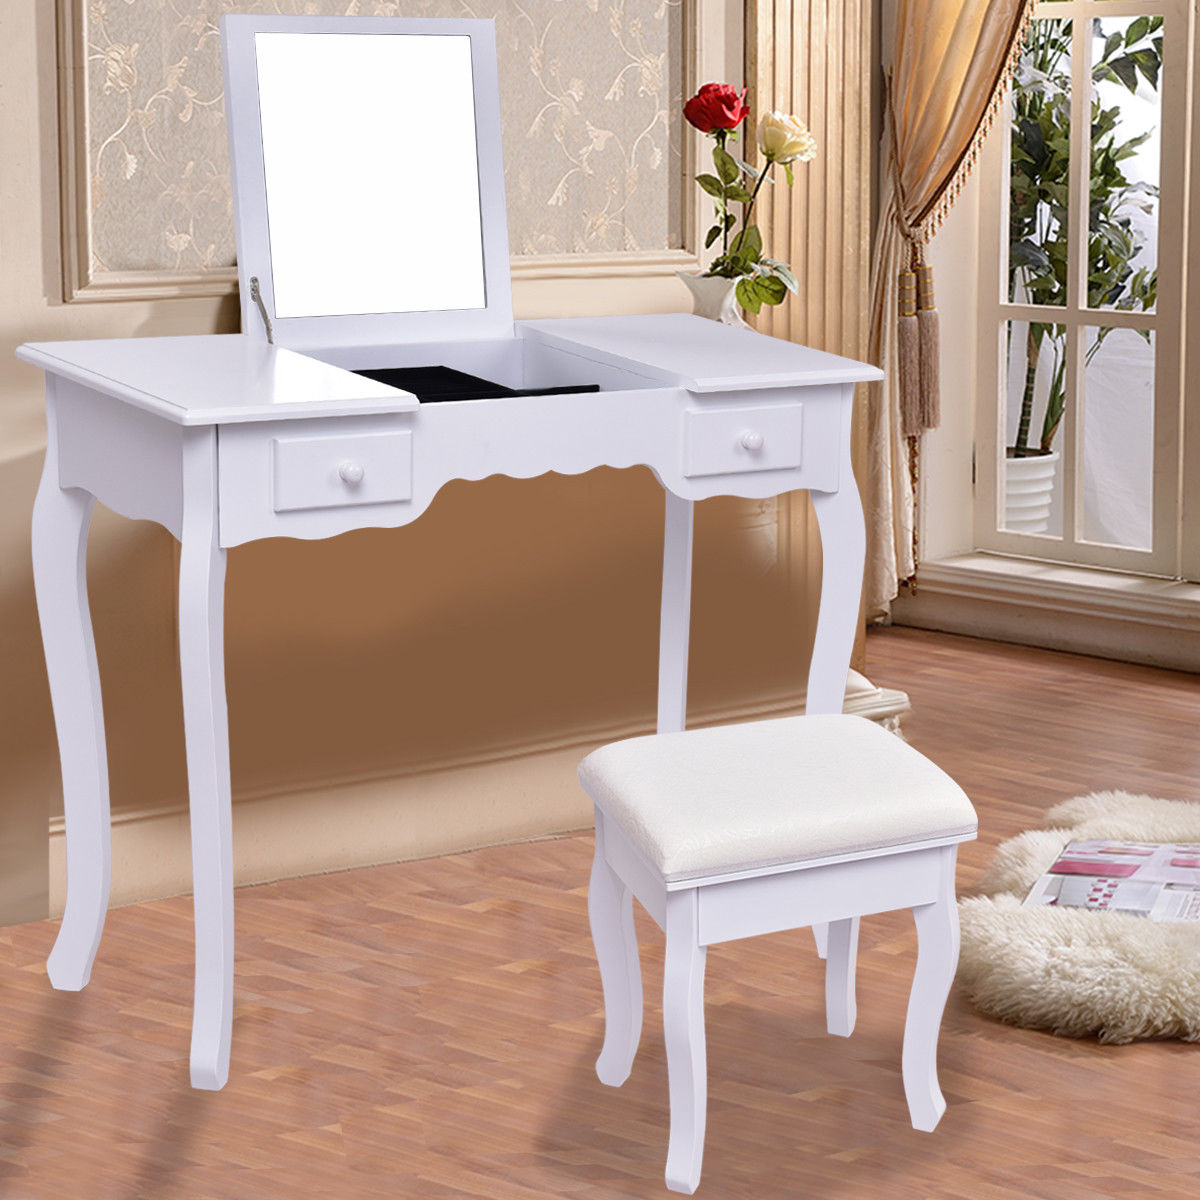 Giantex White Vanity Dressing Table Set Mirrored Bathroom Furniture With Stool Table Mod ...